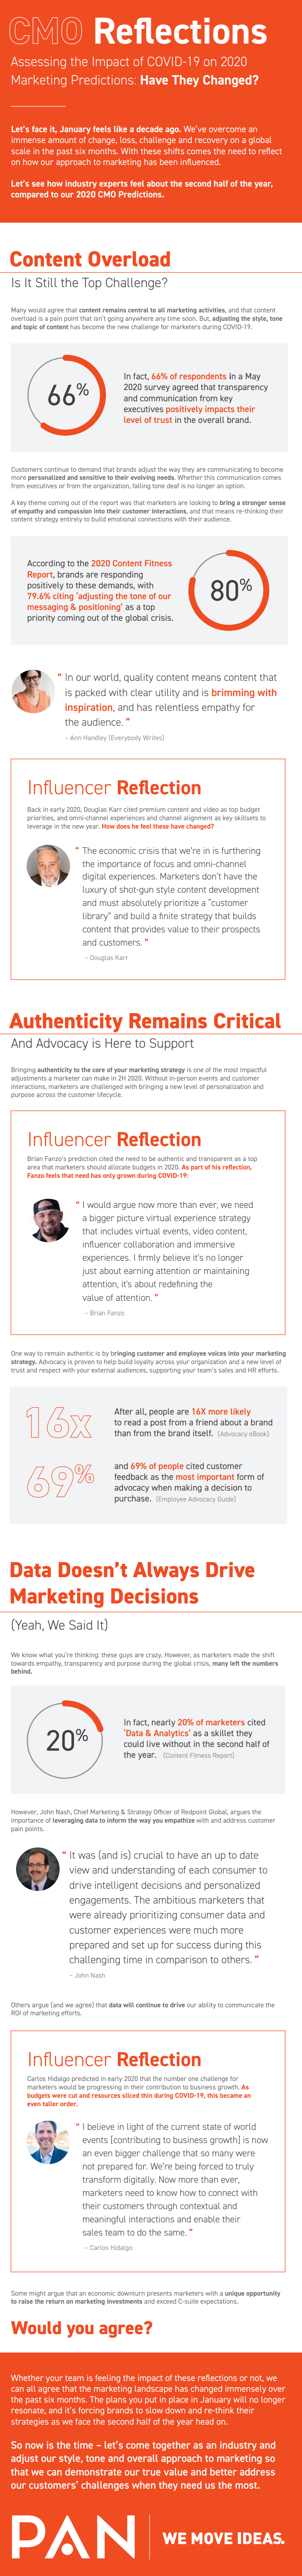 CMO reflections infographic